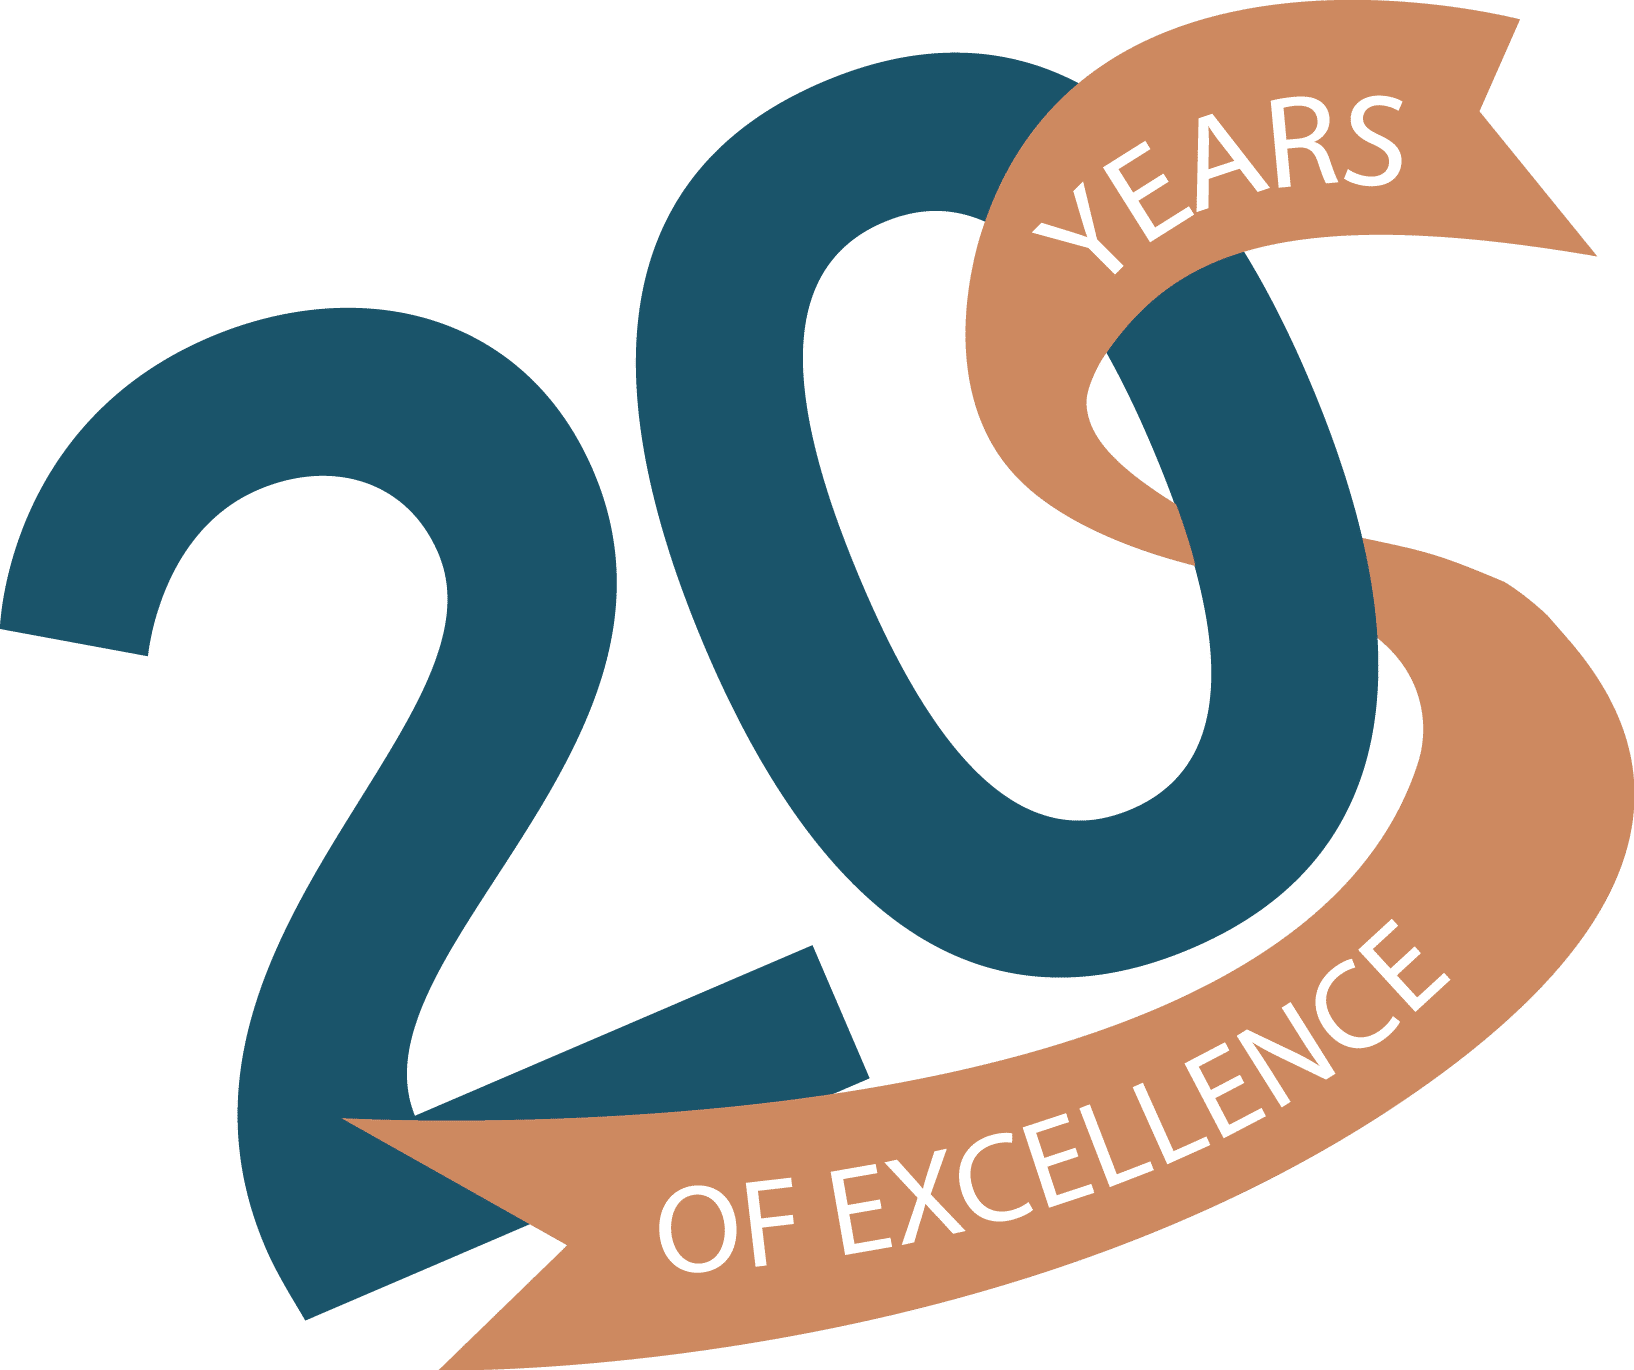 20 Years of Exellence